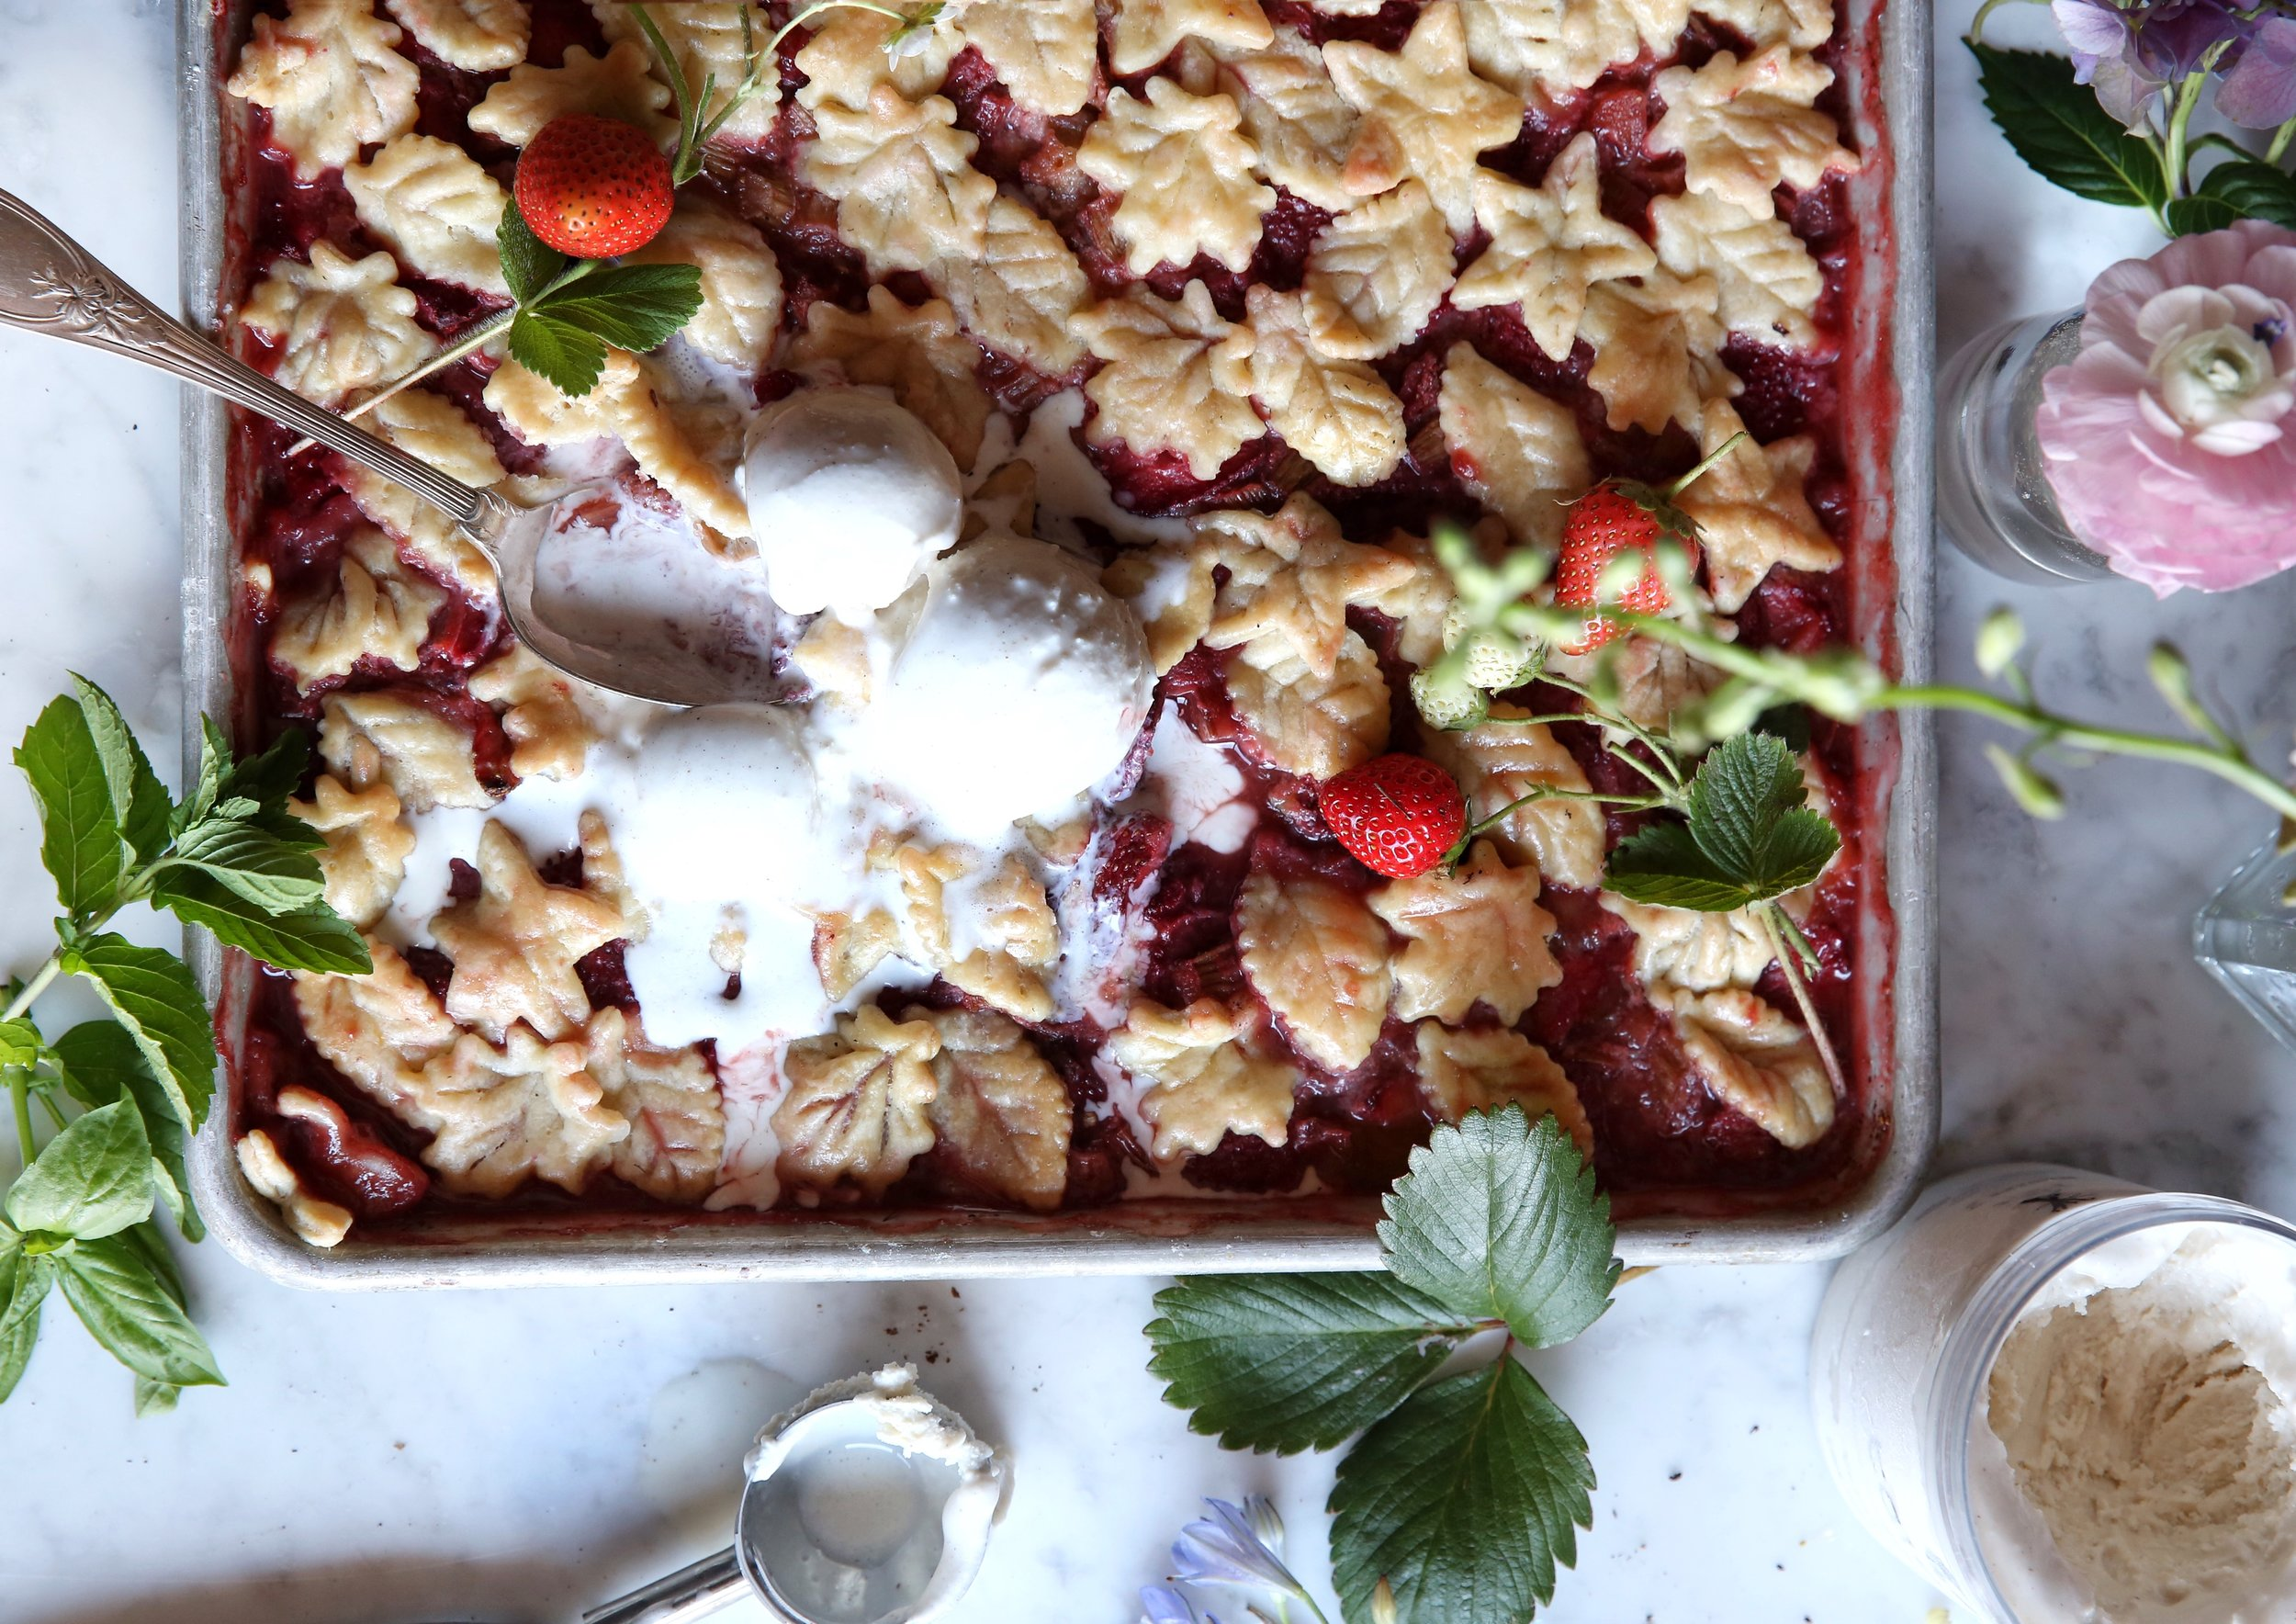 Judy Kim, Pie workshop, Strawberry Rhubarb Slab Pie